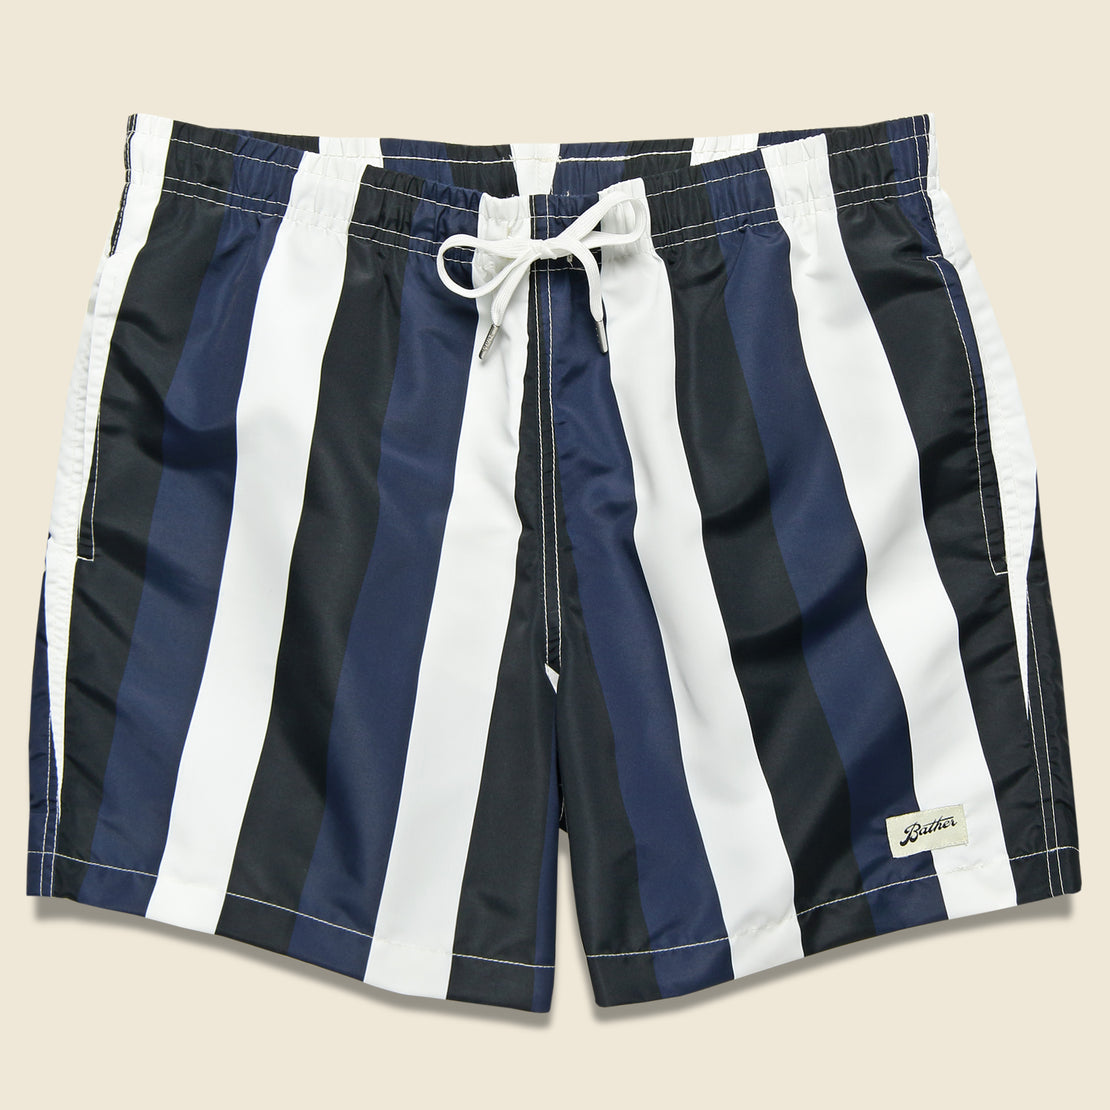 Bather Striped Swim Trunk - Blue/Black